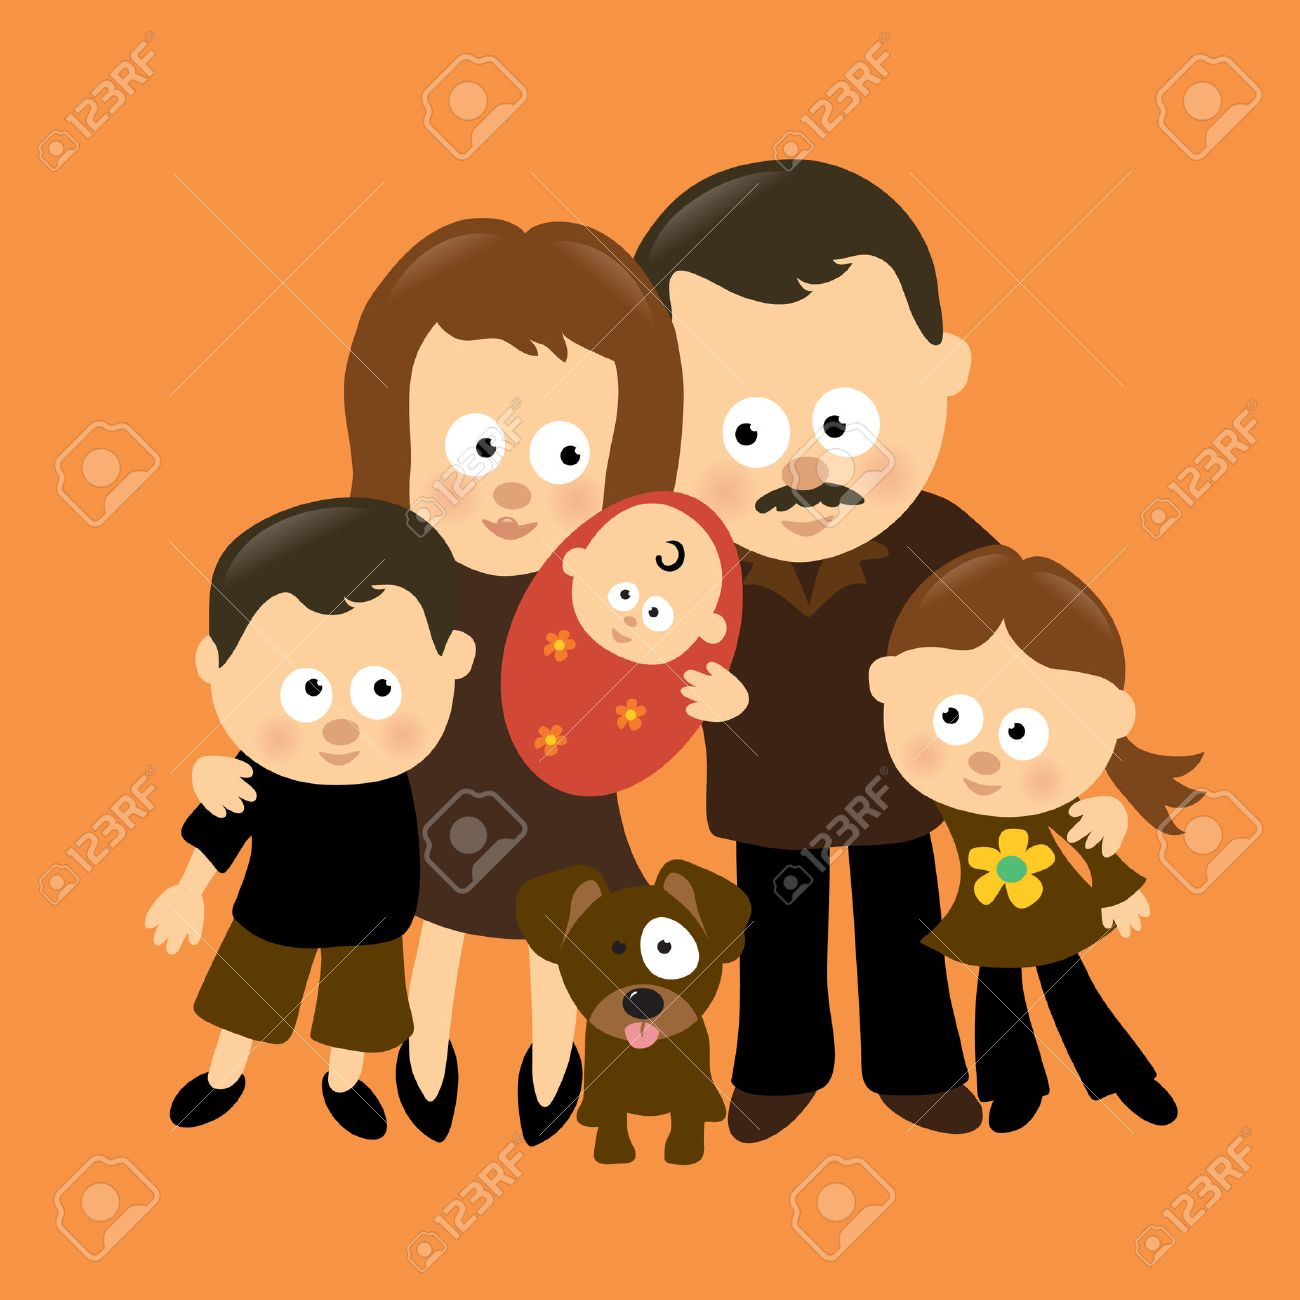 We are Family 3 (Hispanic) Stock Vector - 6349128